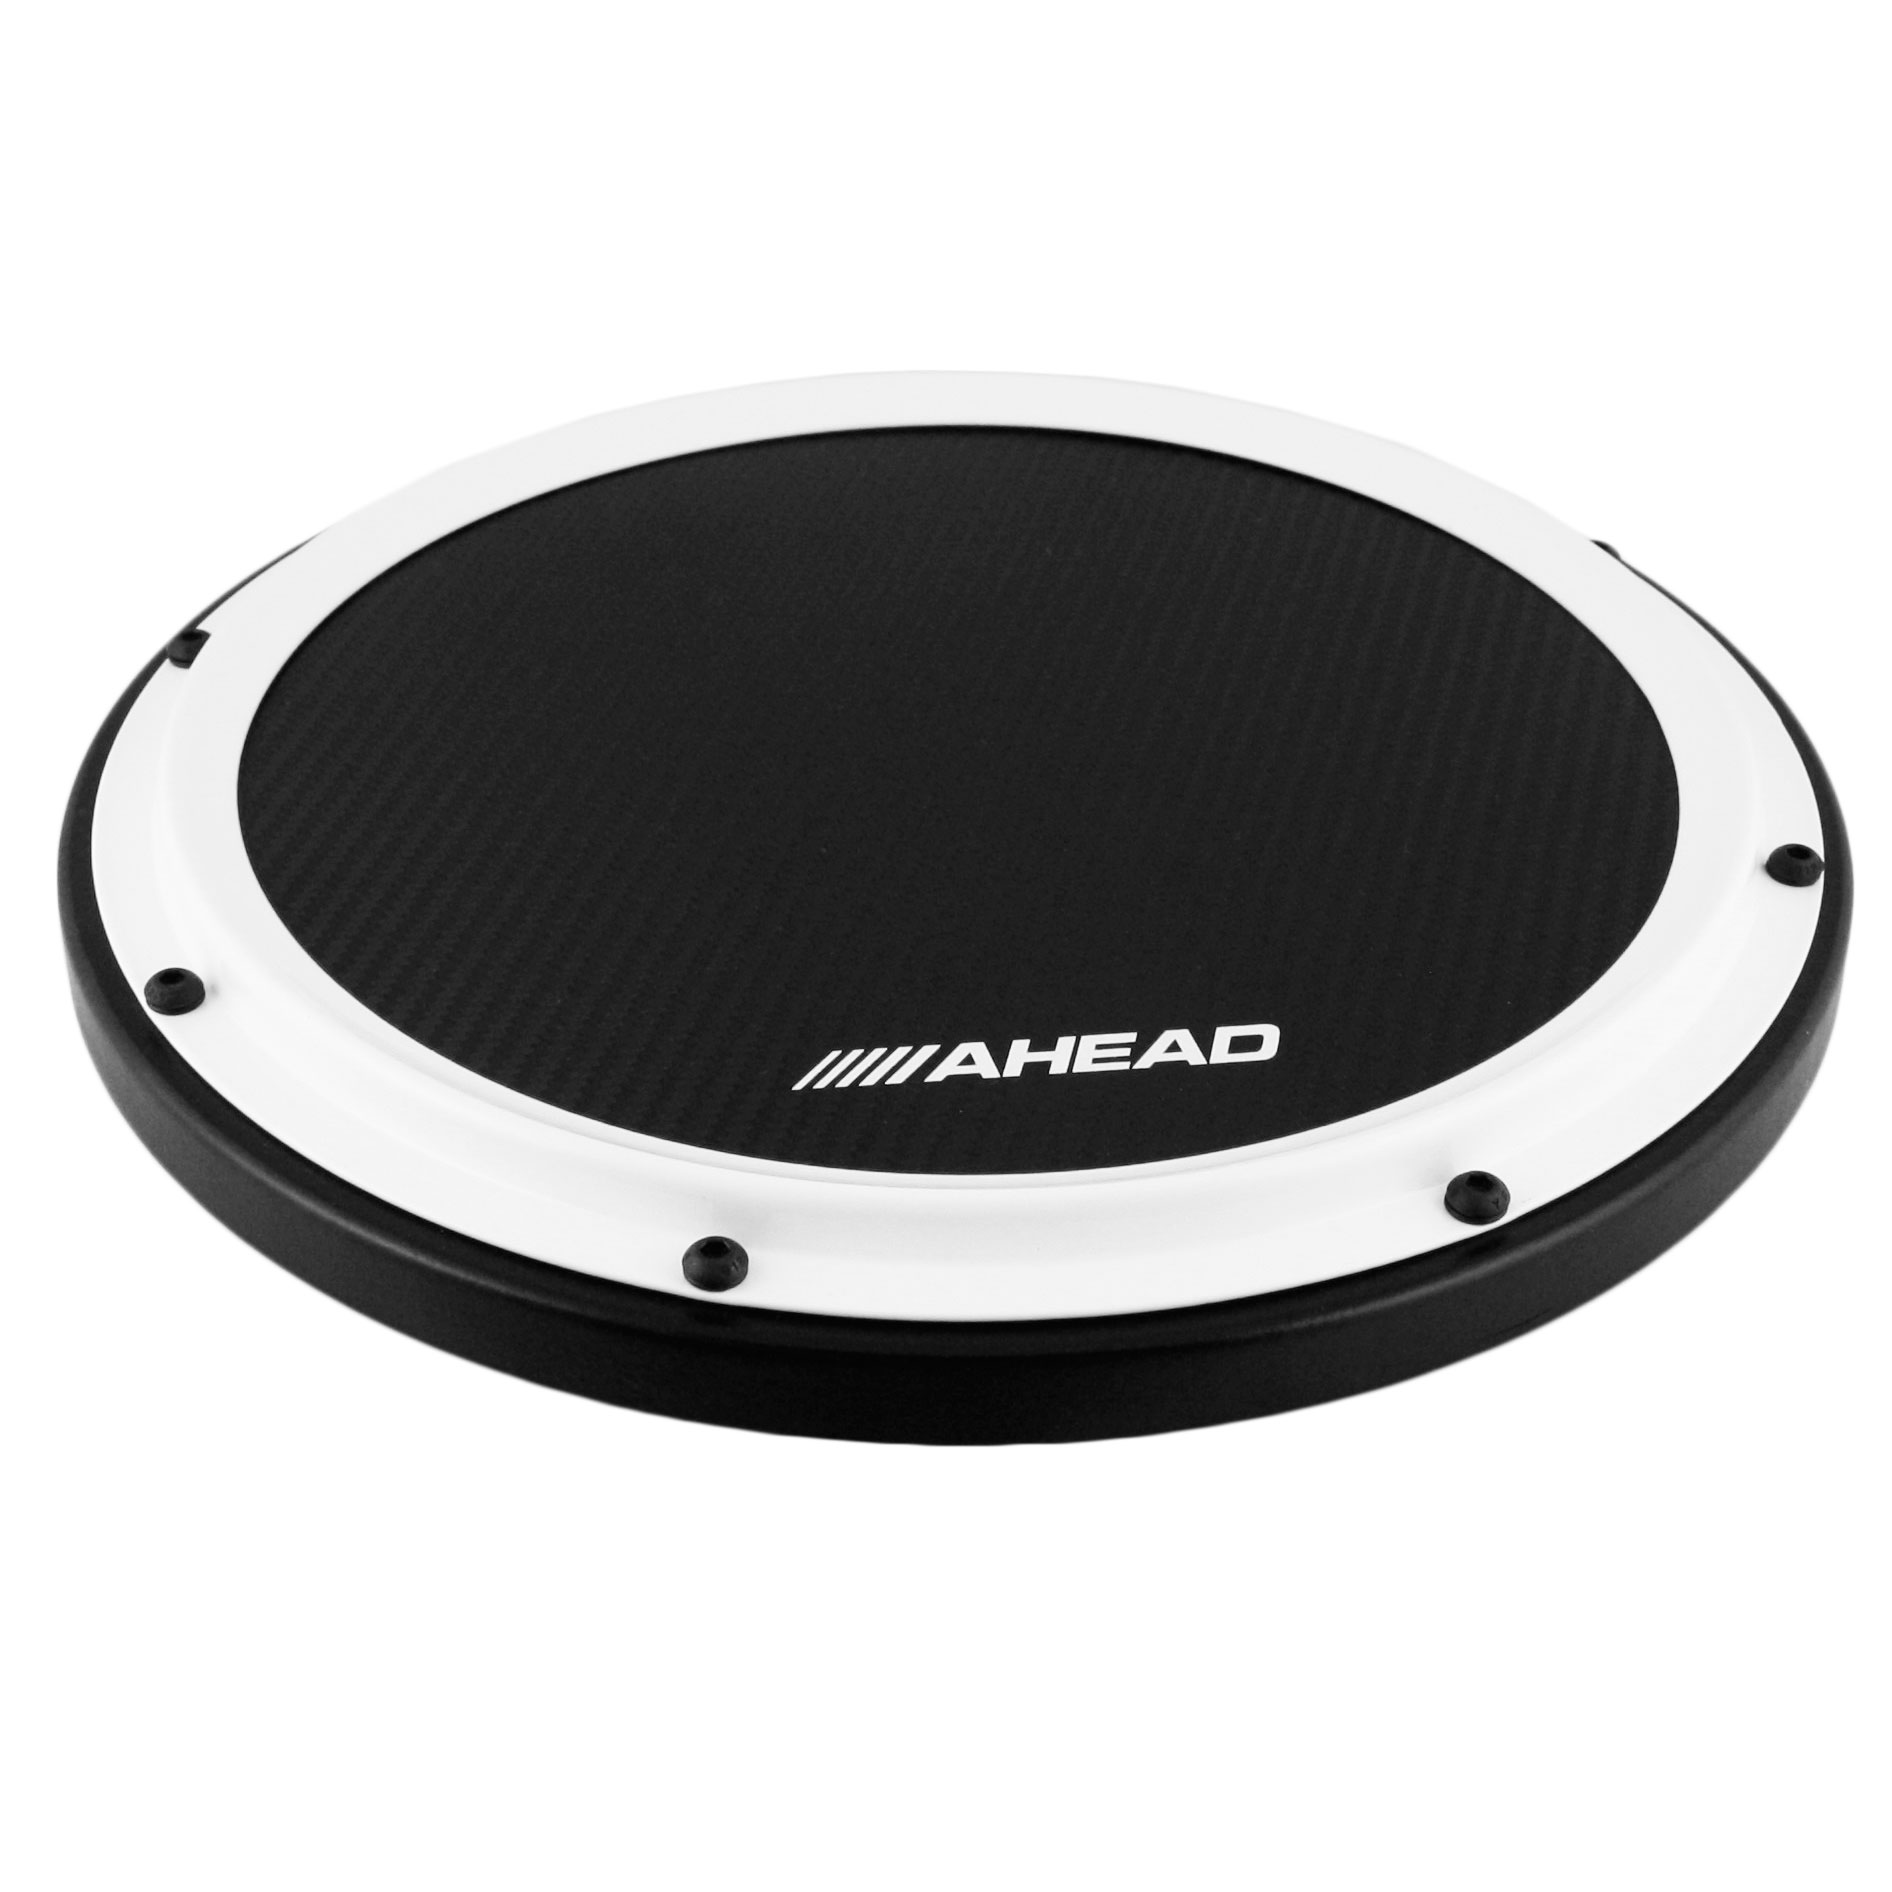 "Ahead 14"" S-Hoop Practice Pad with Snare Sound"